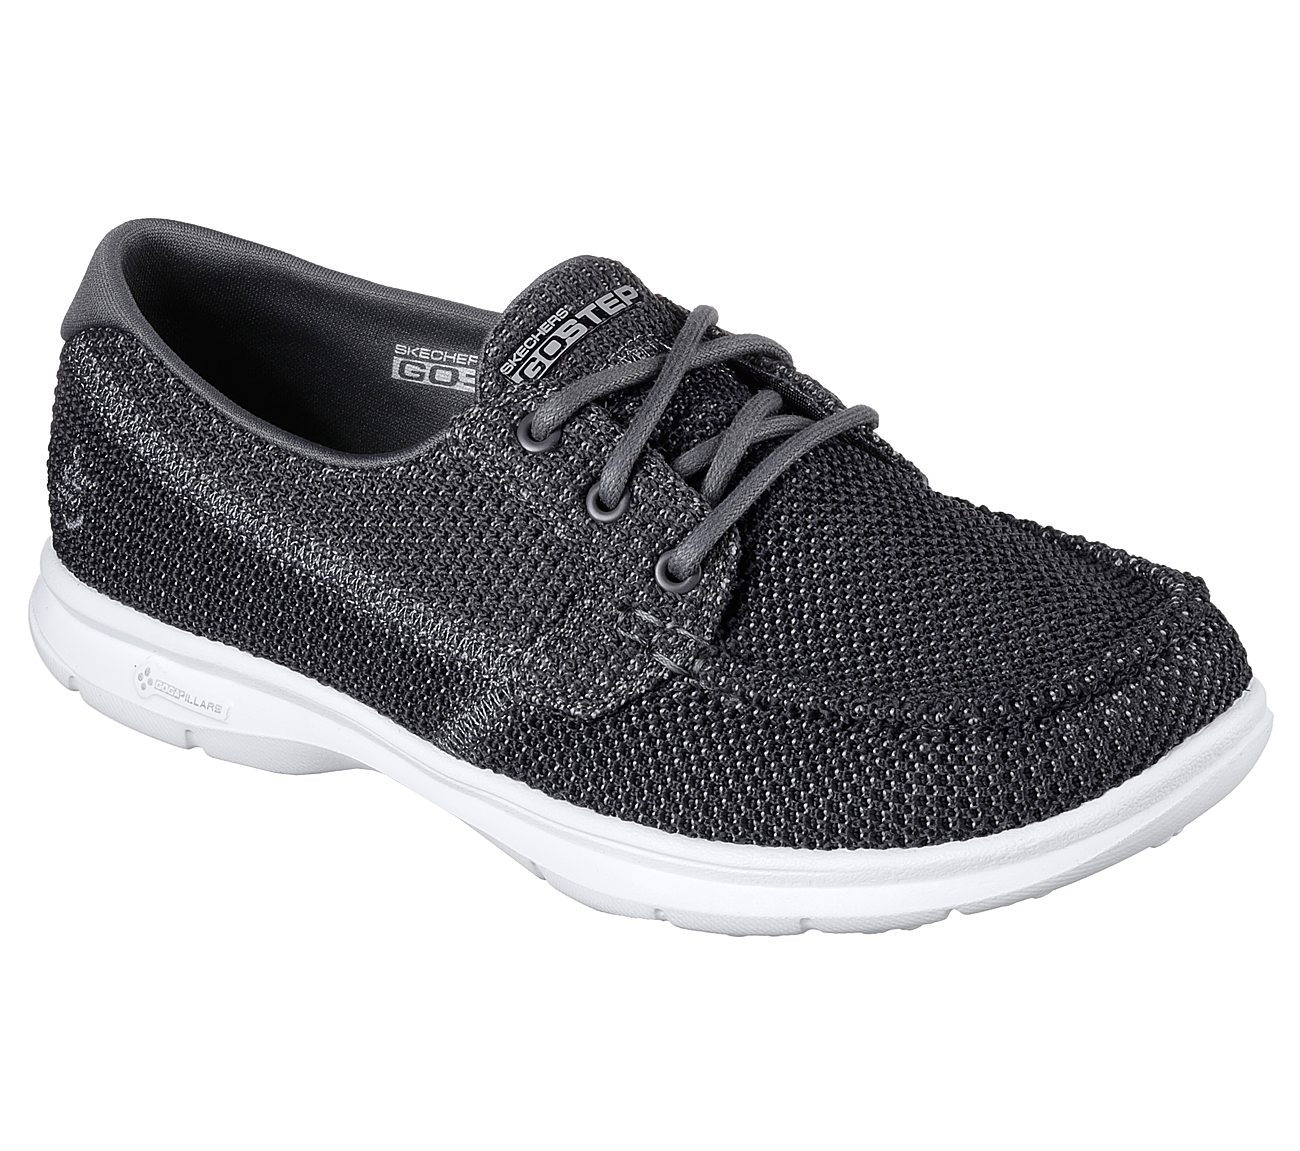 Skechers GO STEP Deck